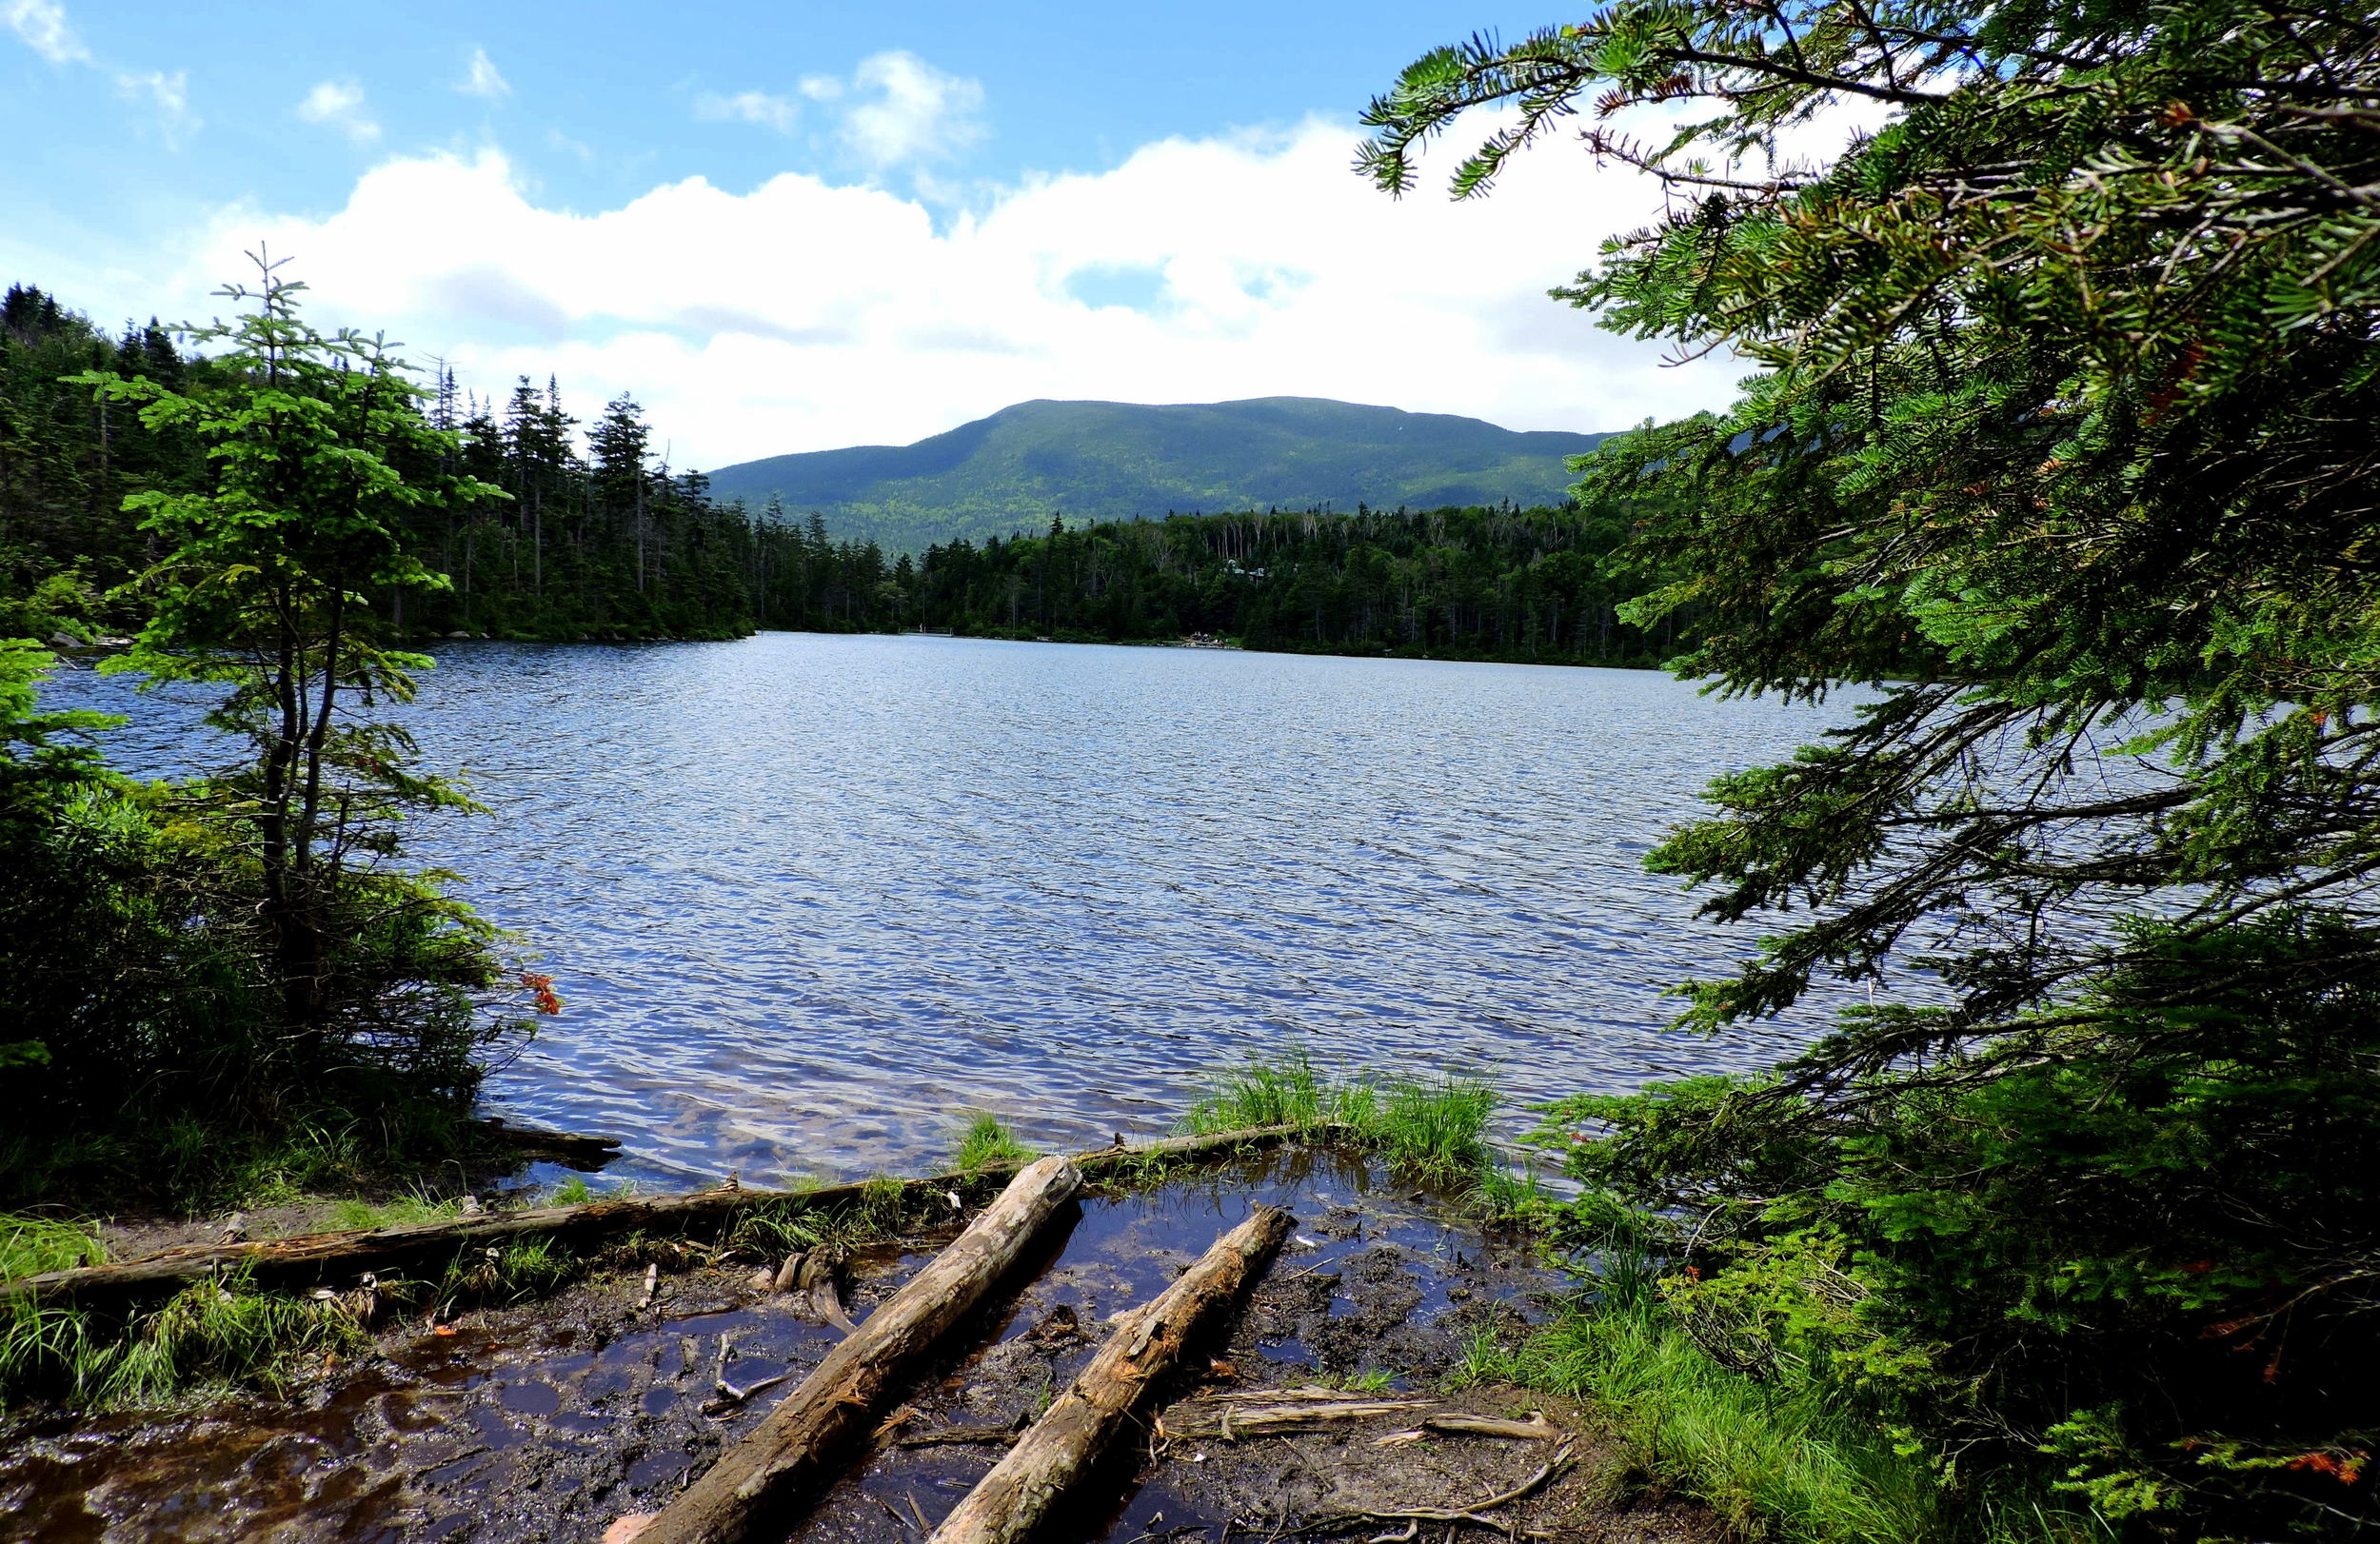 The lake contains brook trout and ducks!